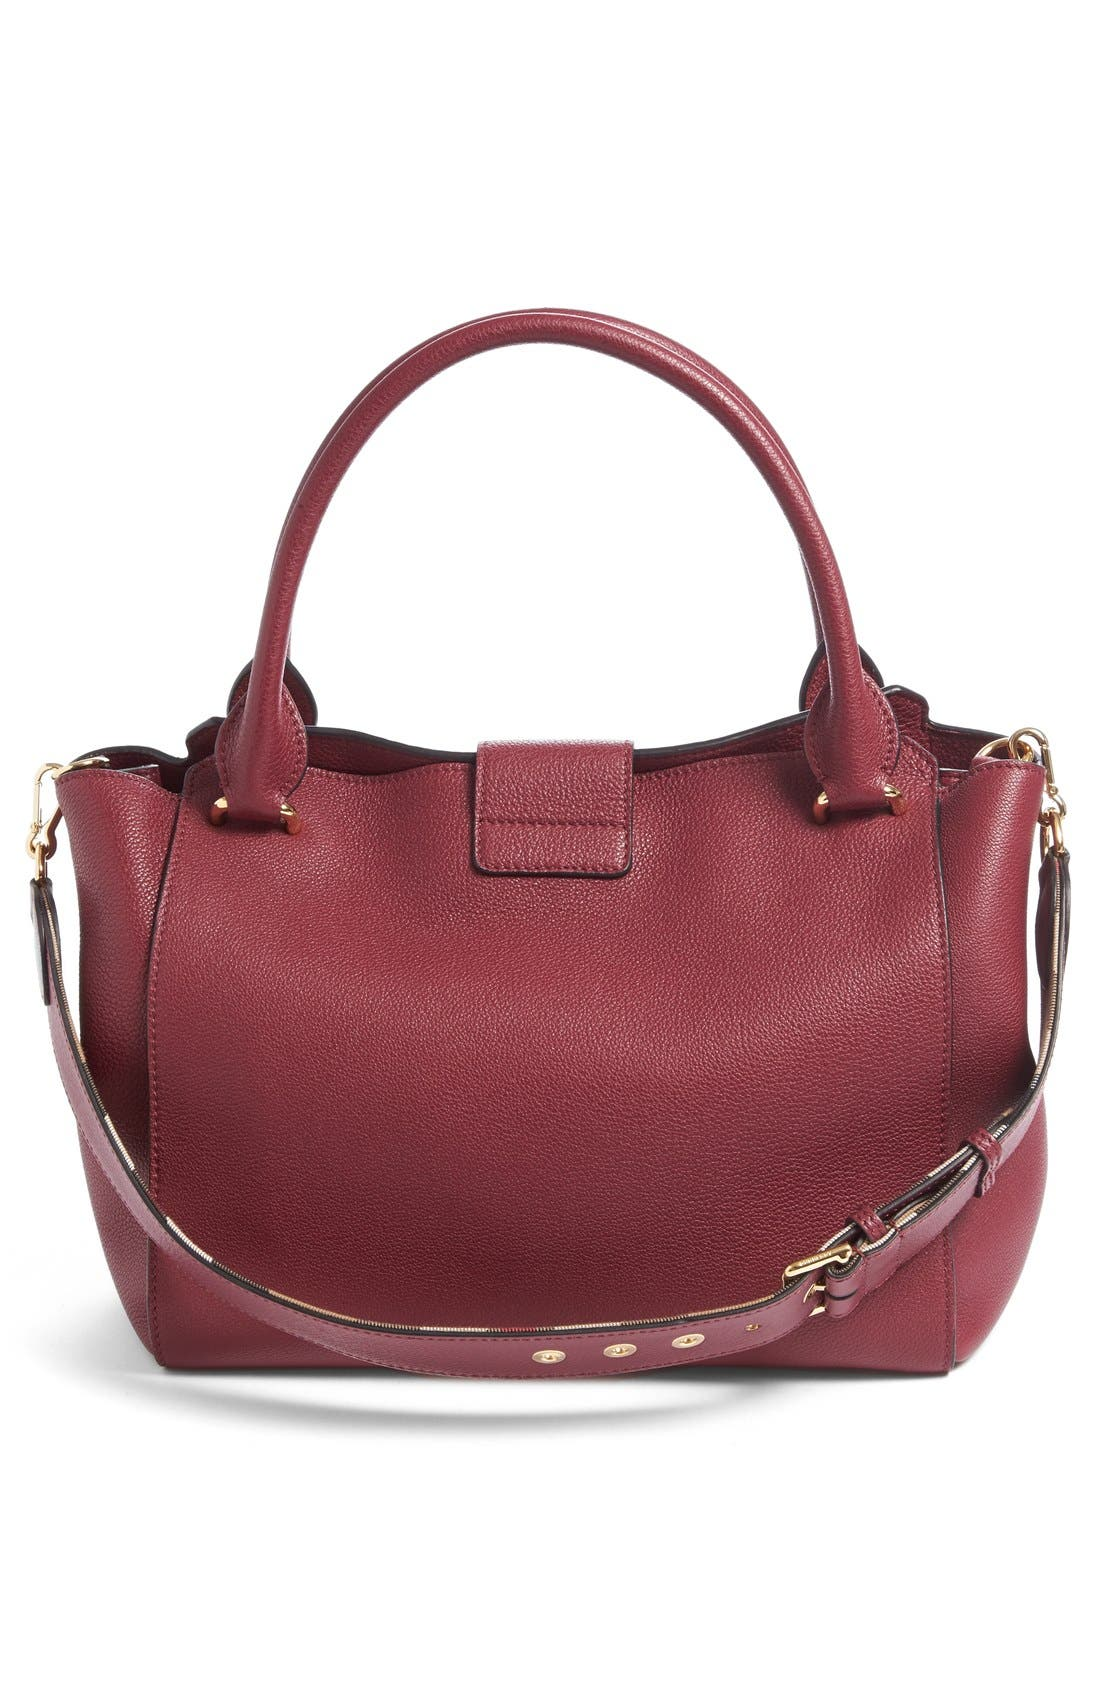 Medium Buckle Leather Satchel,                             Alternate thumbnail 31, color,